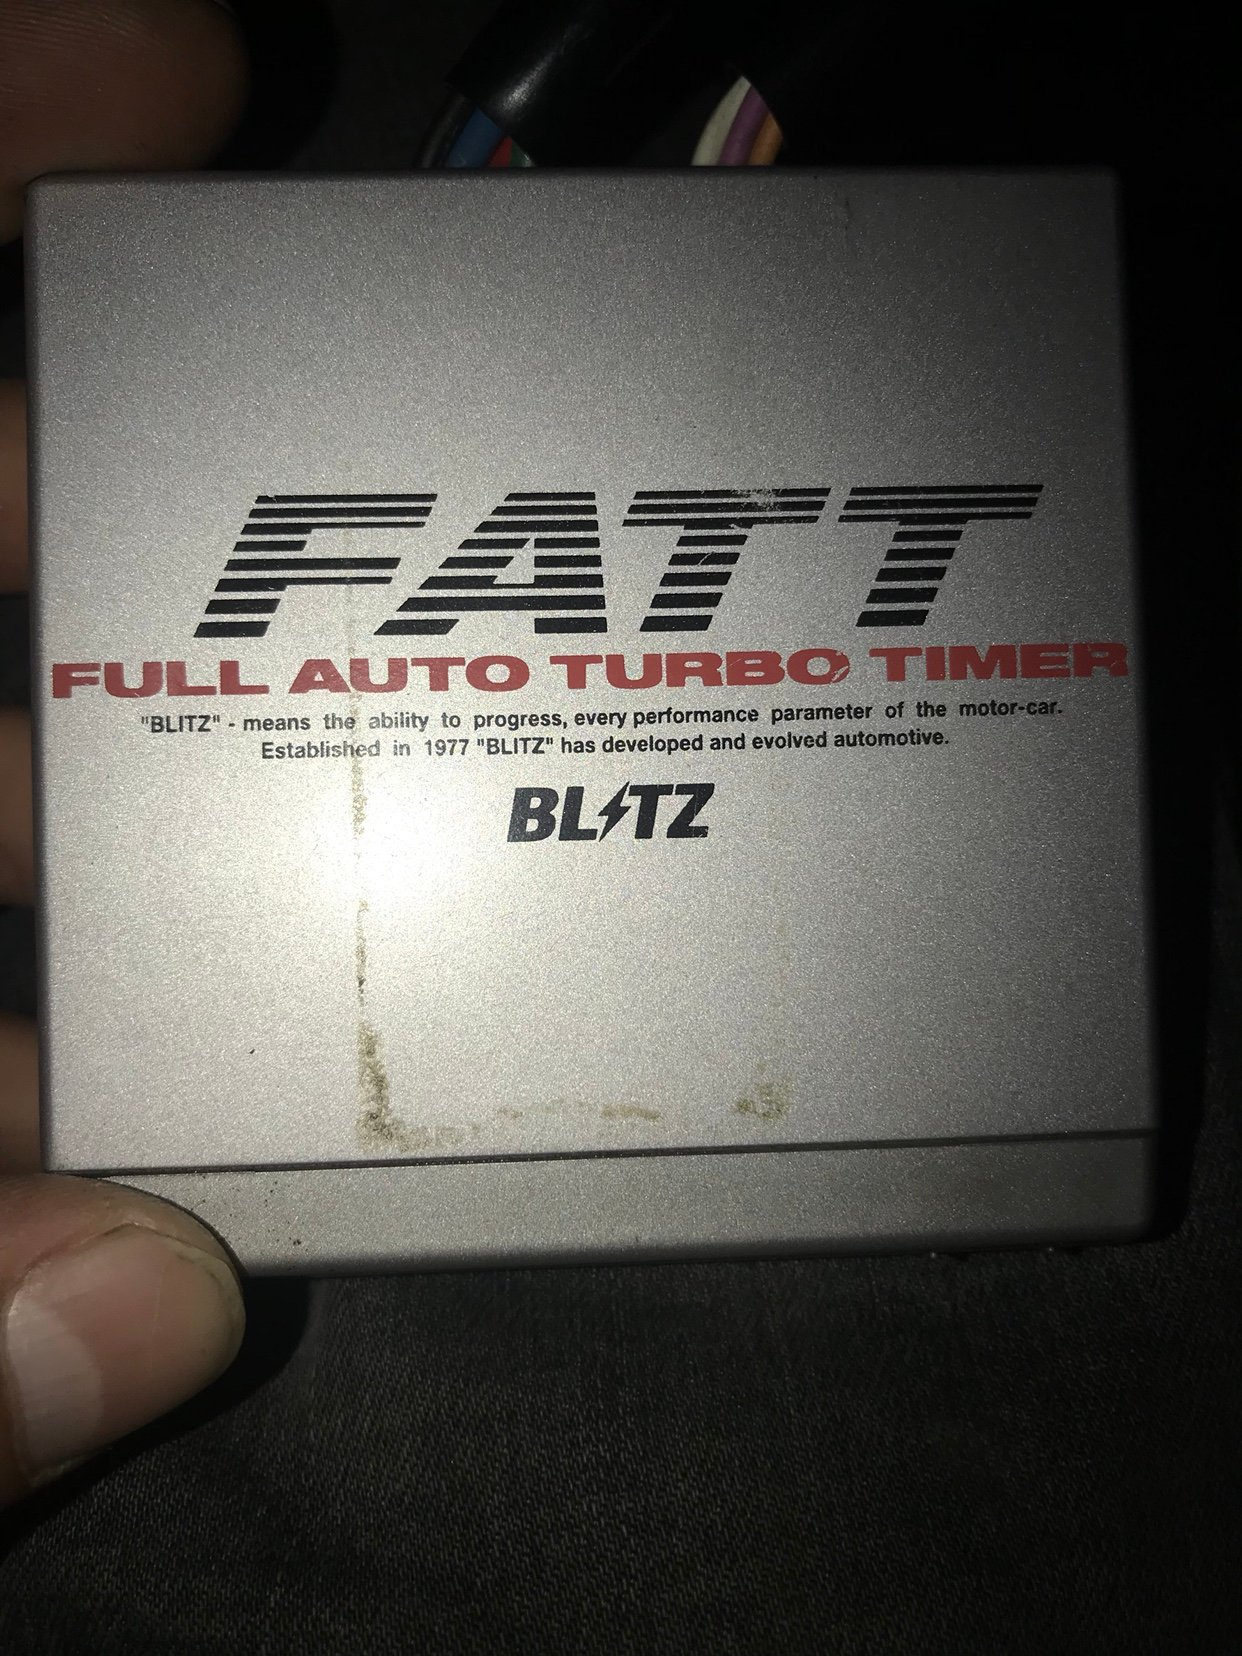 Blitz Fatt Turbo Timer Wiring Diagram Library Reddy G 2 Anyone Here Know Where I Can Find A For This Having